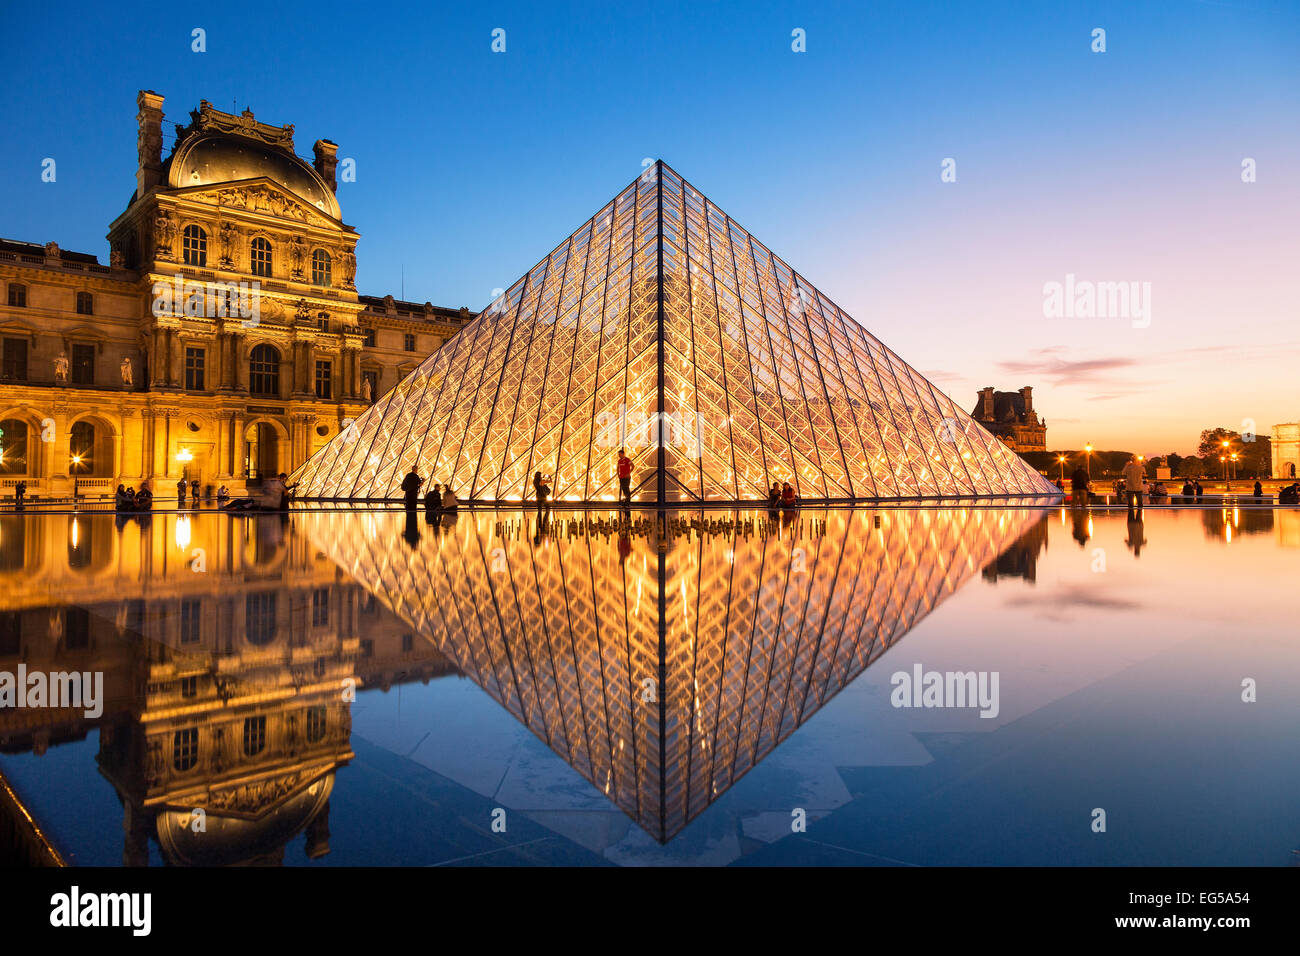 Paris, la pyramide du Louvre au crépuscule Photo Stock